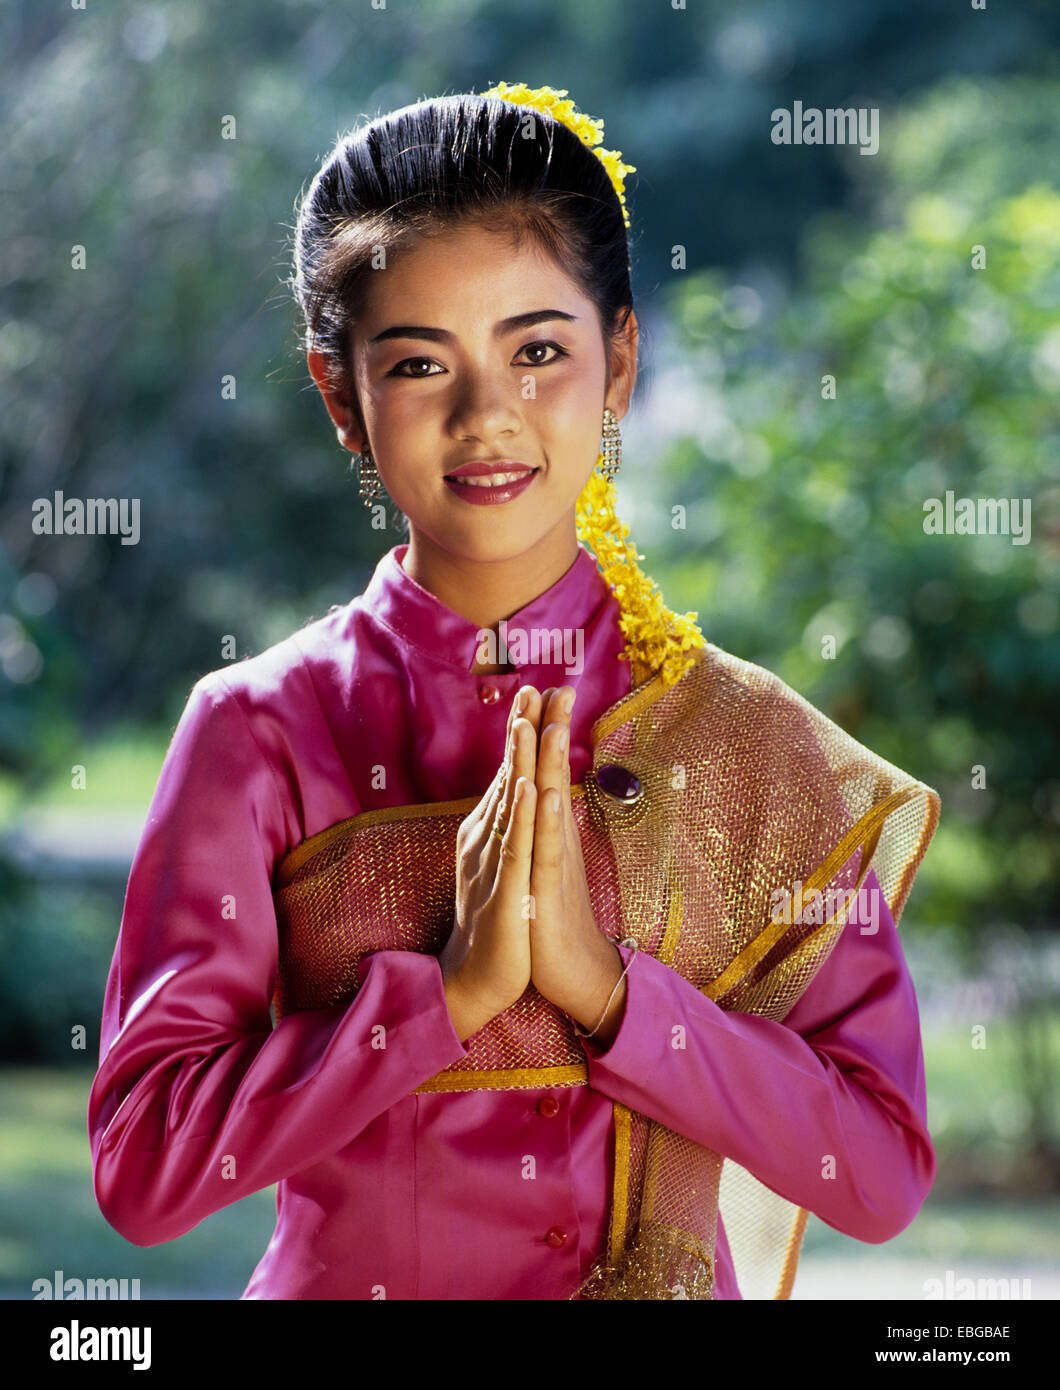 The Wai A Thai Gesture Of Greeting Young Woman Wearing A Stock